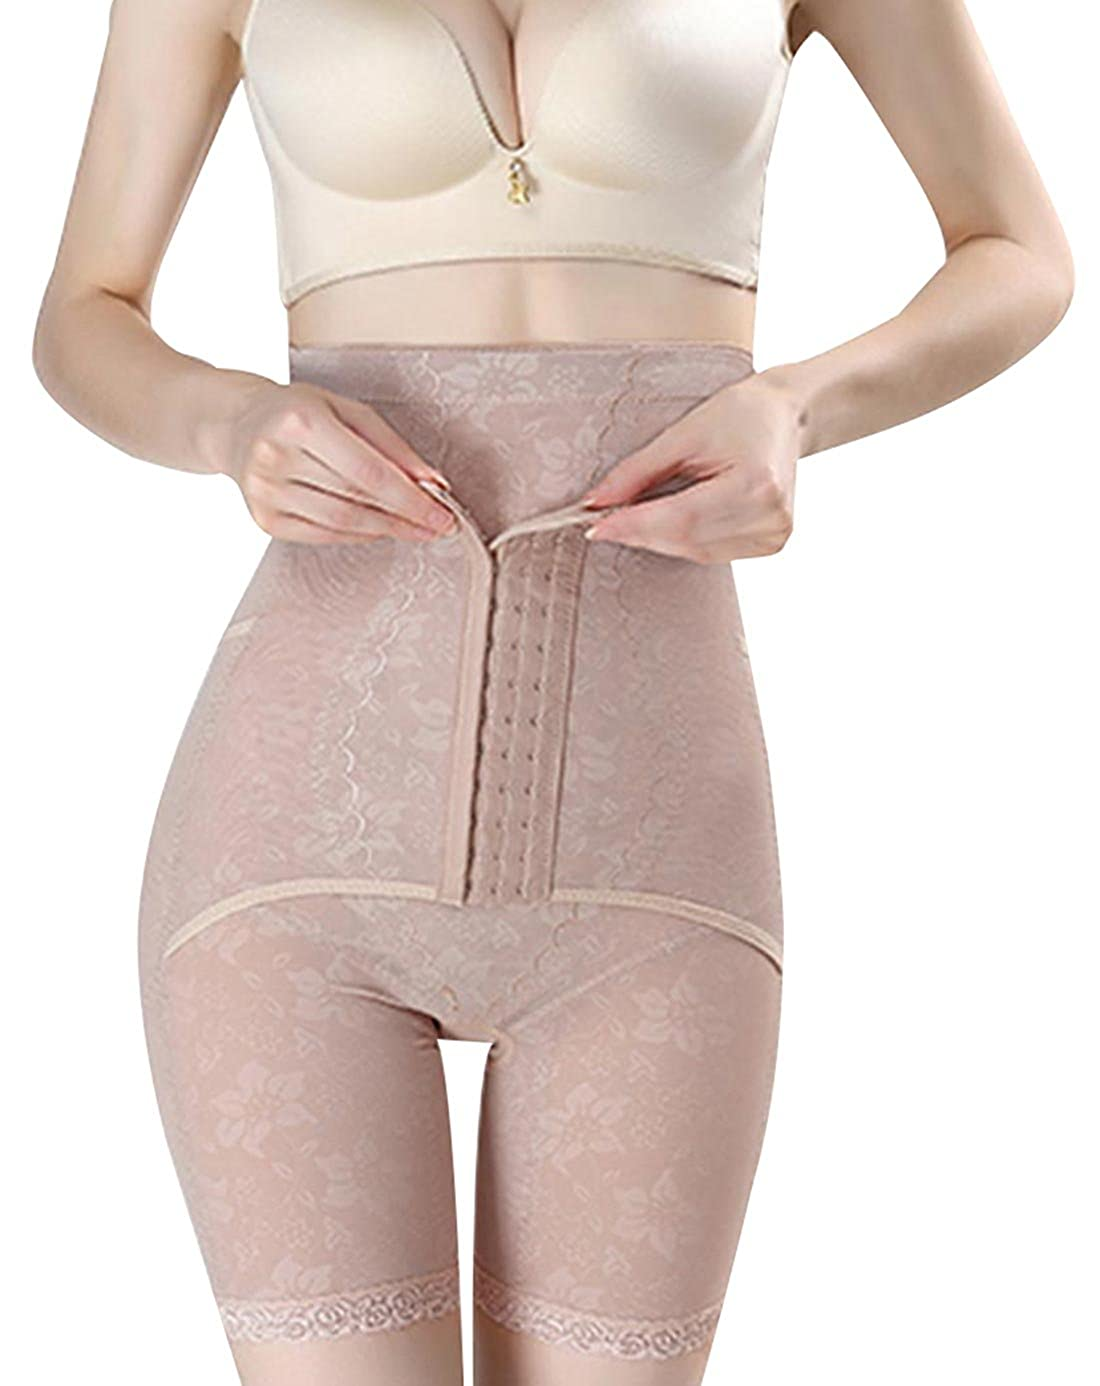 PERISLIM Women's Tummy Control Shapewear Butt Lifter Thigh Slimmer with Hooks HJLFS4396-4403